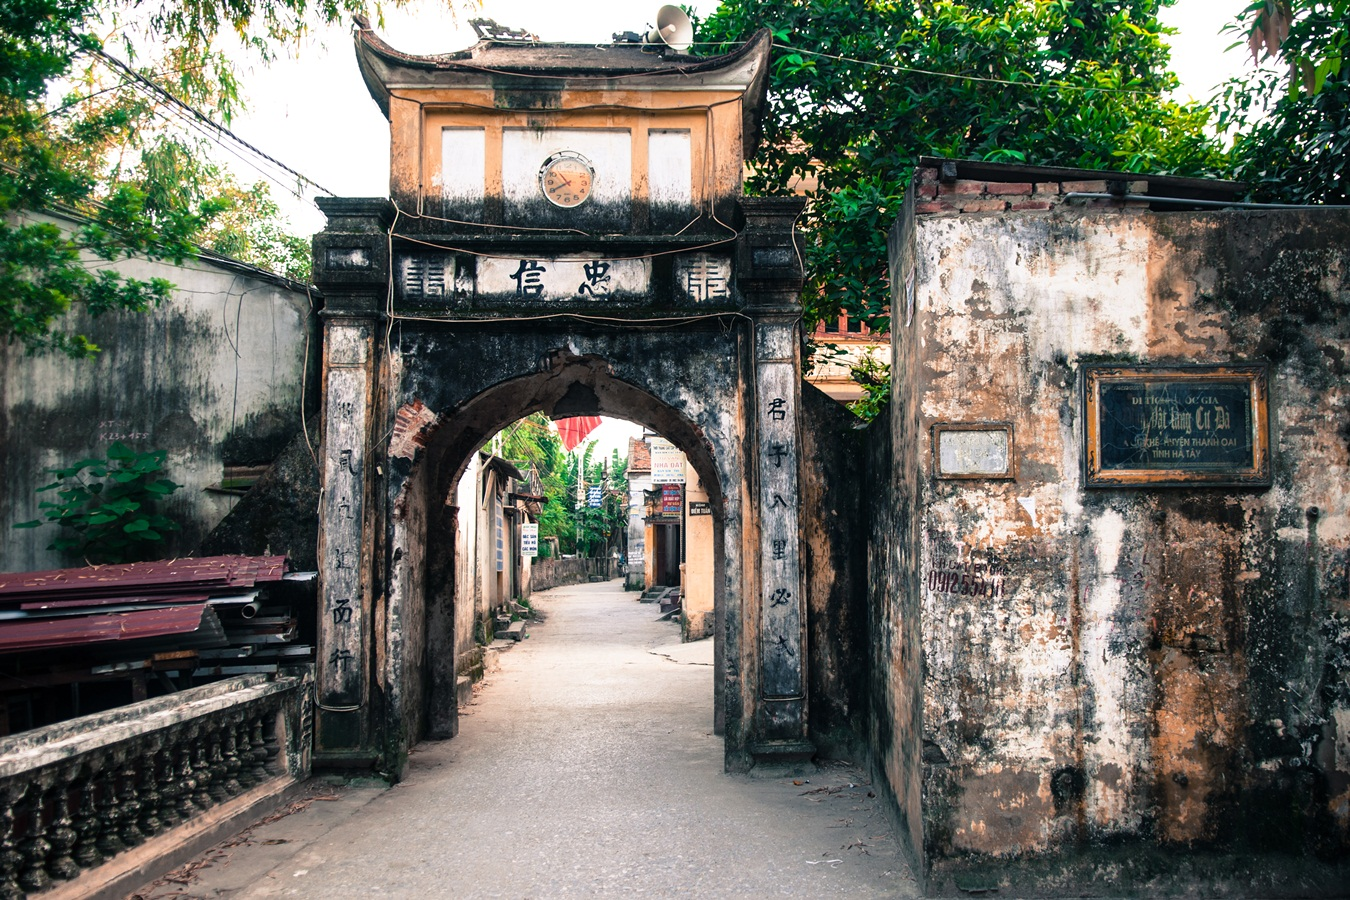 One day in Hanoi's craft villages